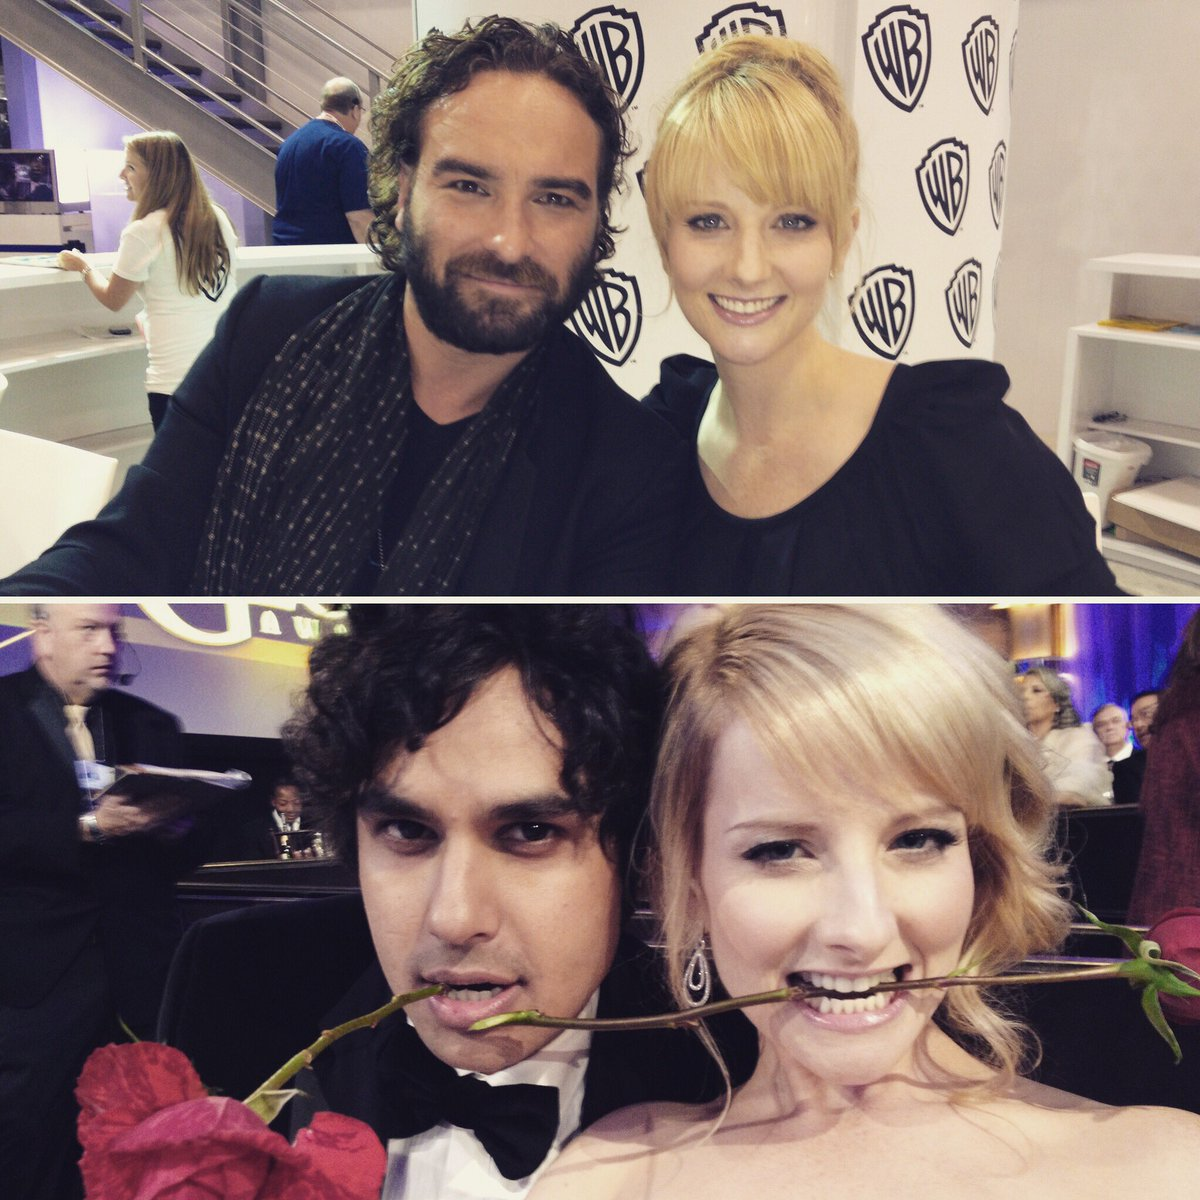 Wishing the very happiest of birthdays to these two fine gentlemen @kunalnayyar & #JohnnyGalecki Love you guys!!! ❤️ https://t.co/Zw6RqIQune